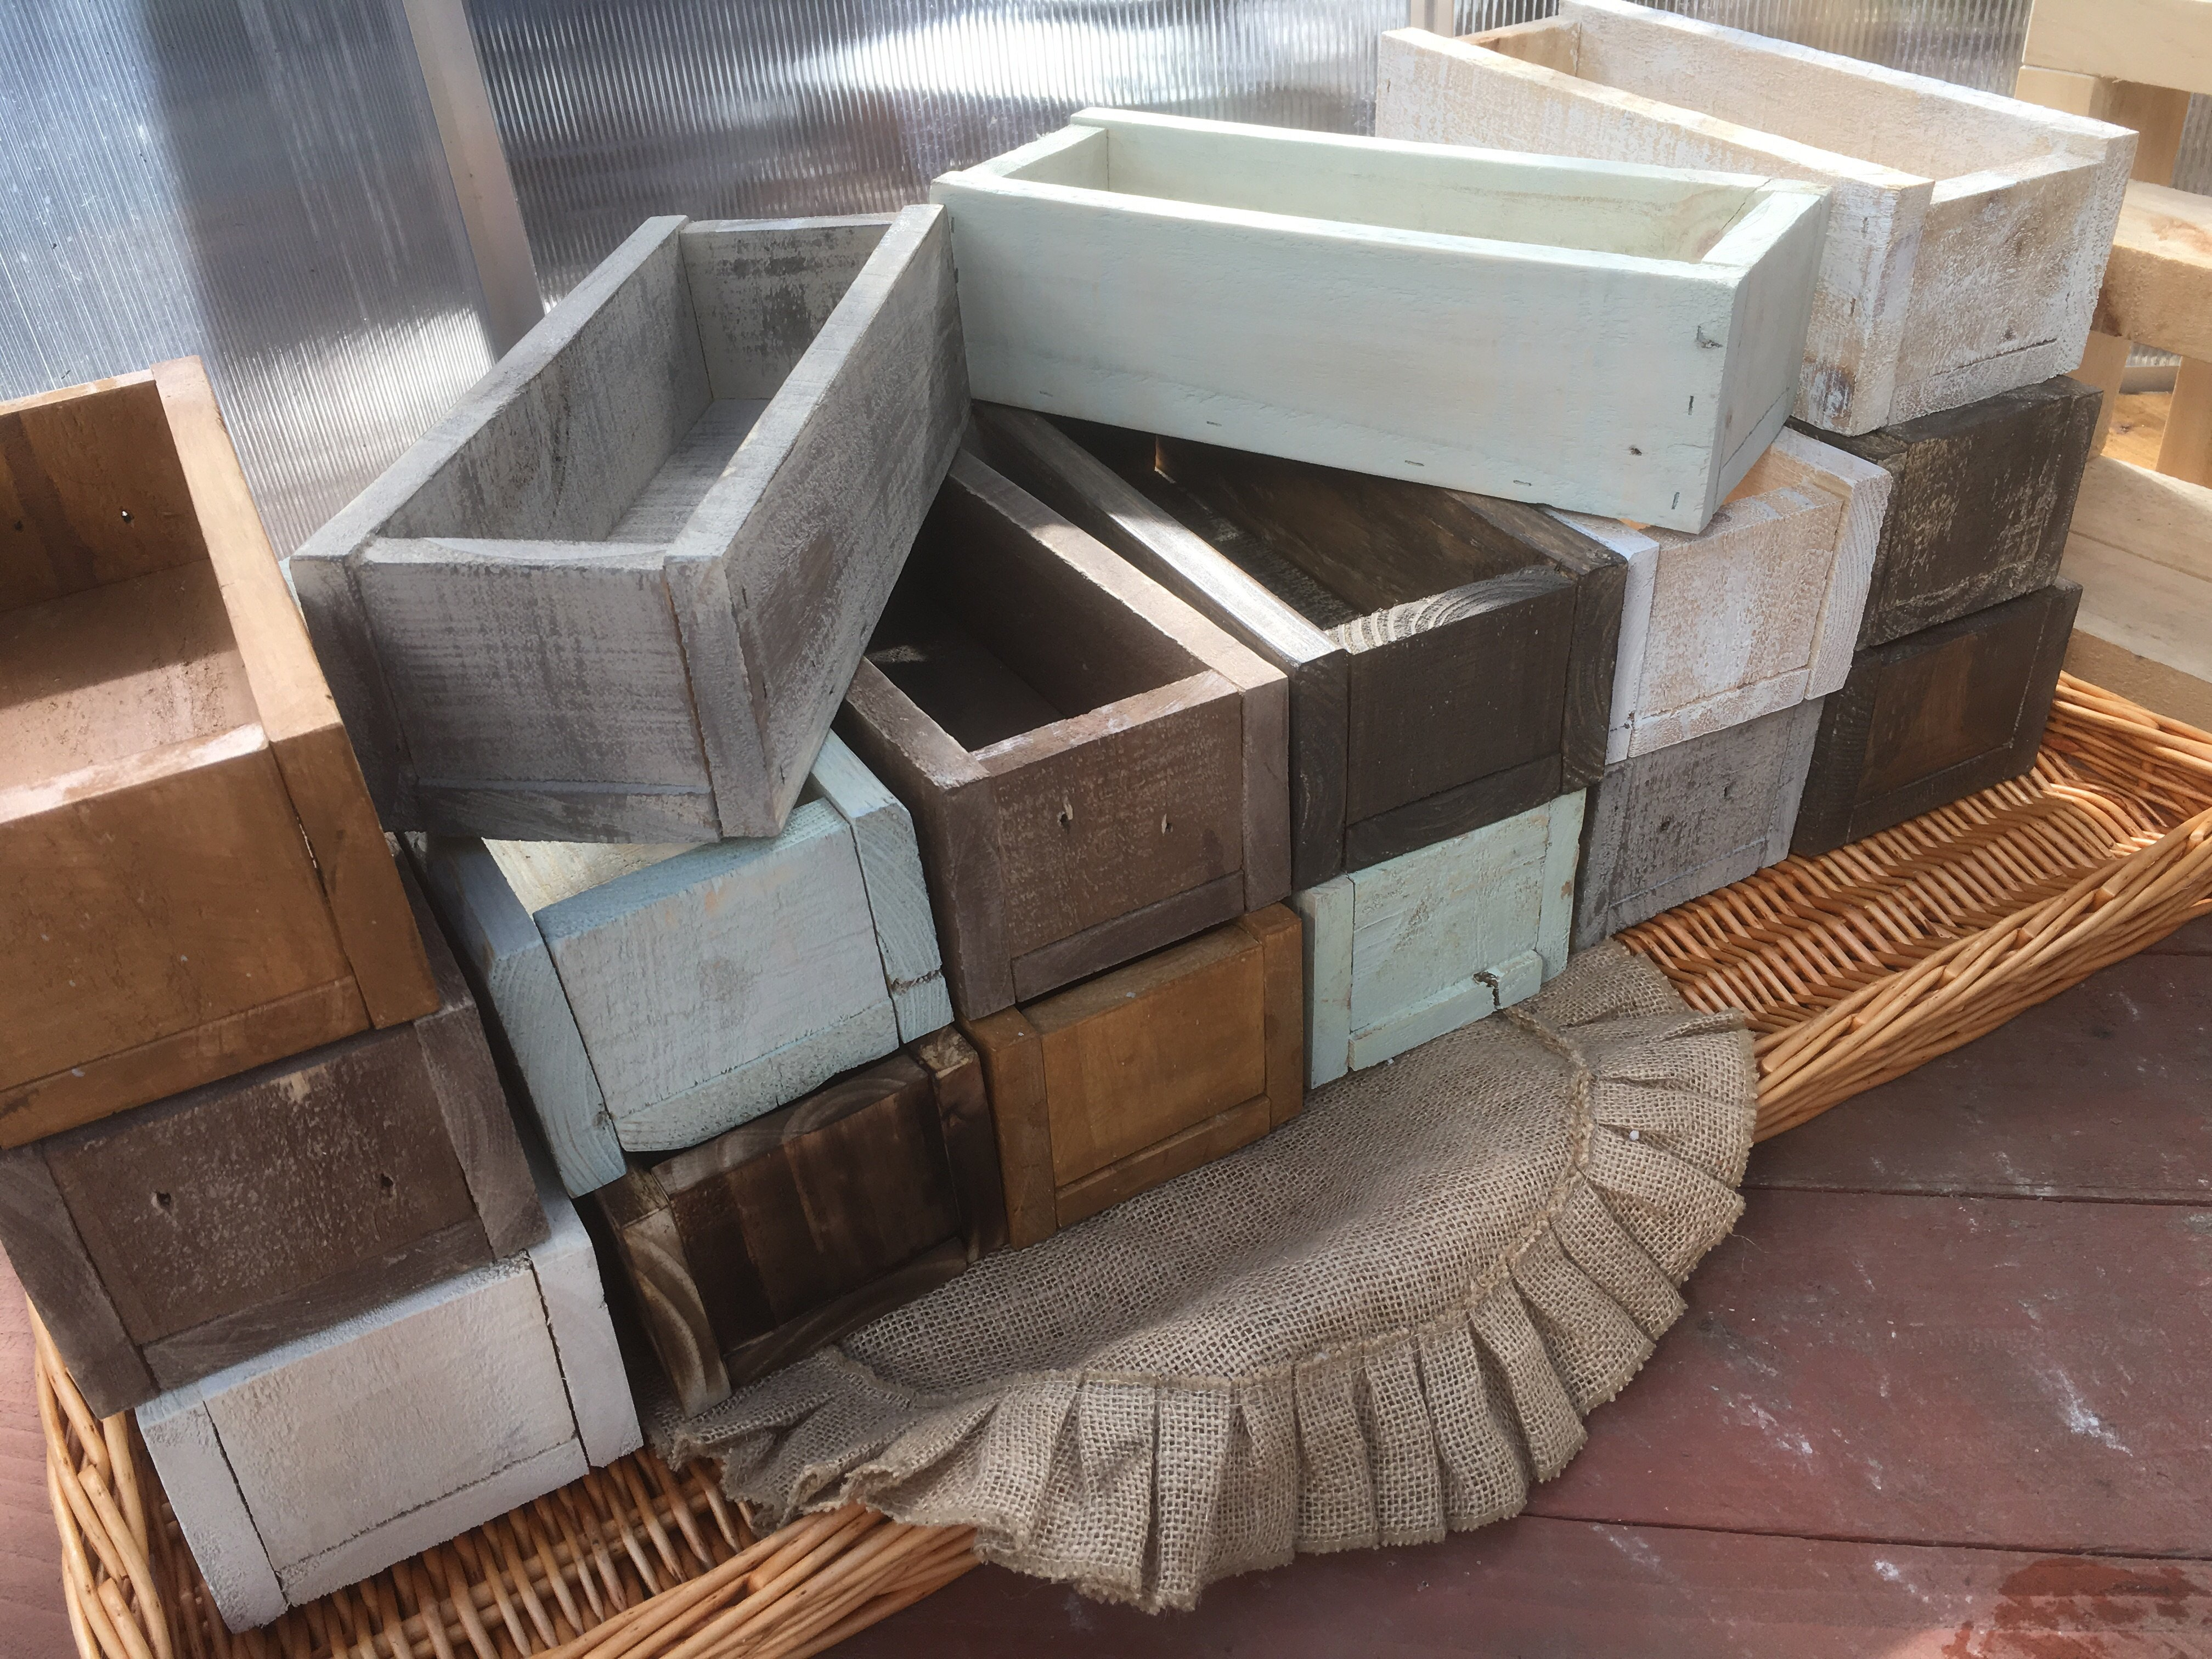 Wholesale 20qty Repurposed Wooden Planter Box Garden Box In 2020 Wooden Planter Boxes Wooden Planters Planter Boxes